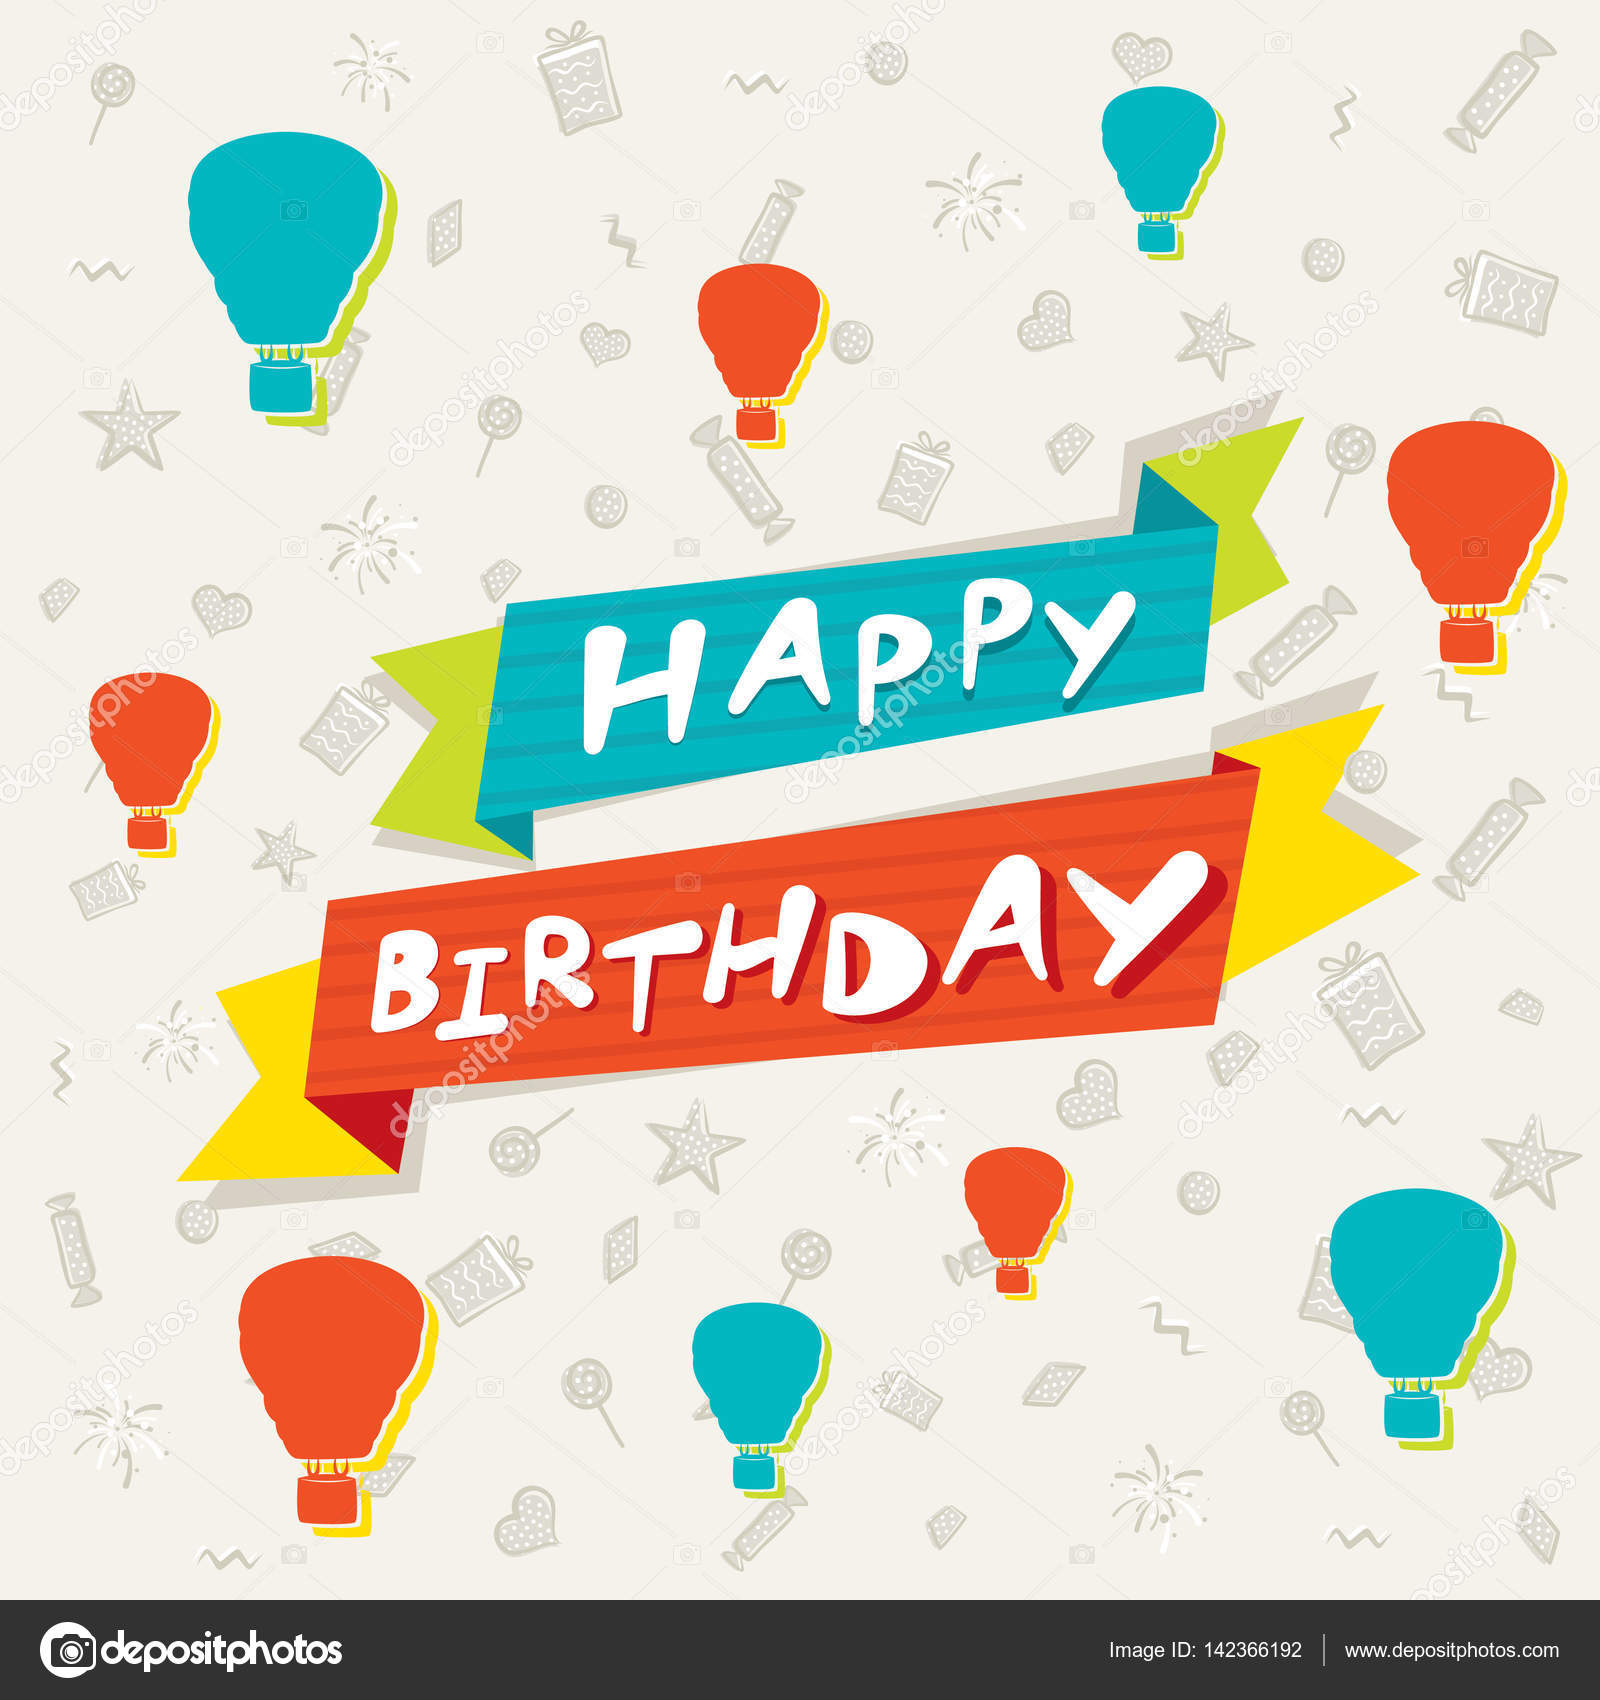 creative happy birthday posters ; depositphotos_142366192-stock-illustration-creative-colorful-happy-birthday-poster